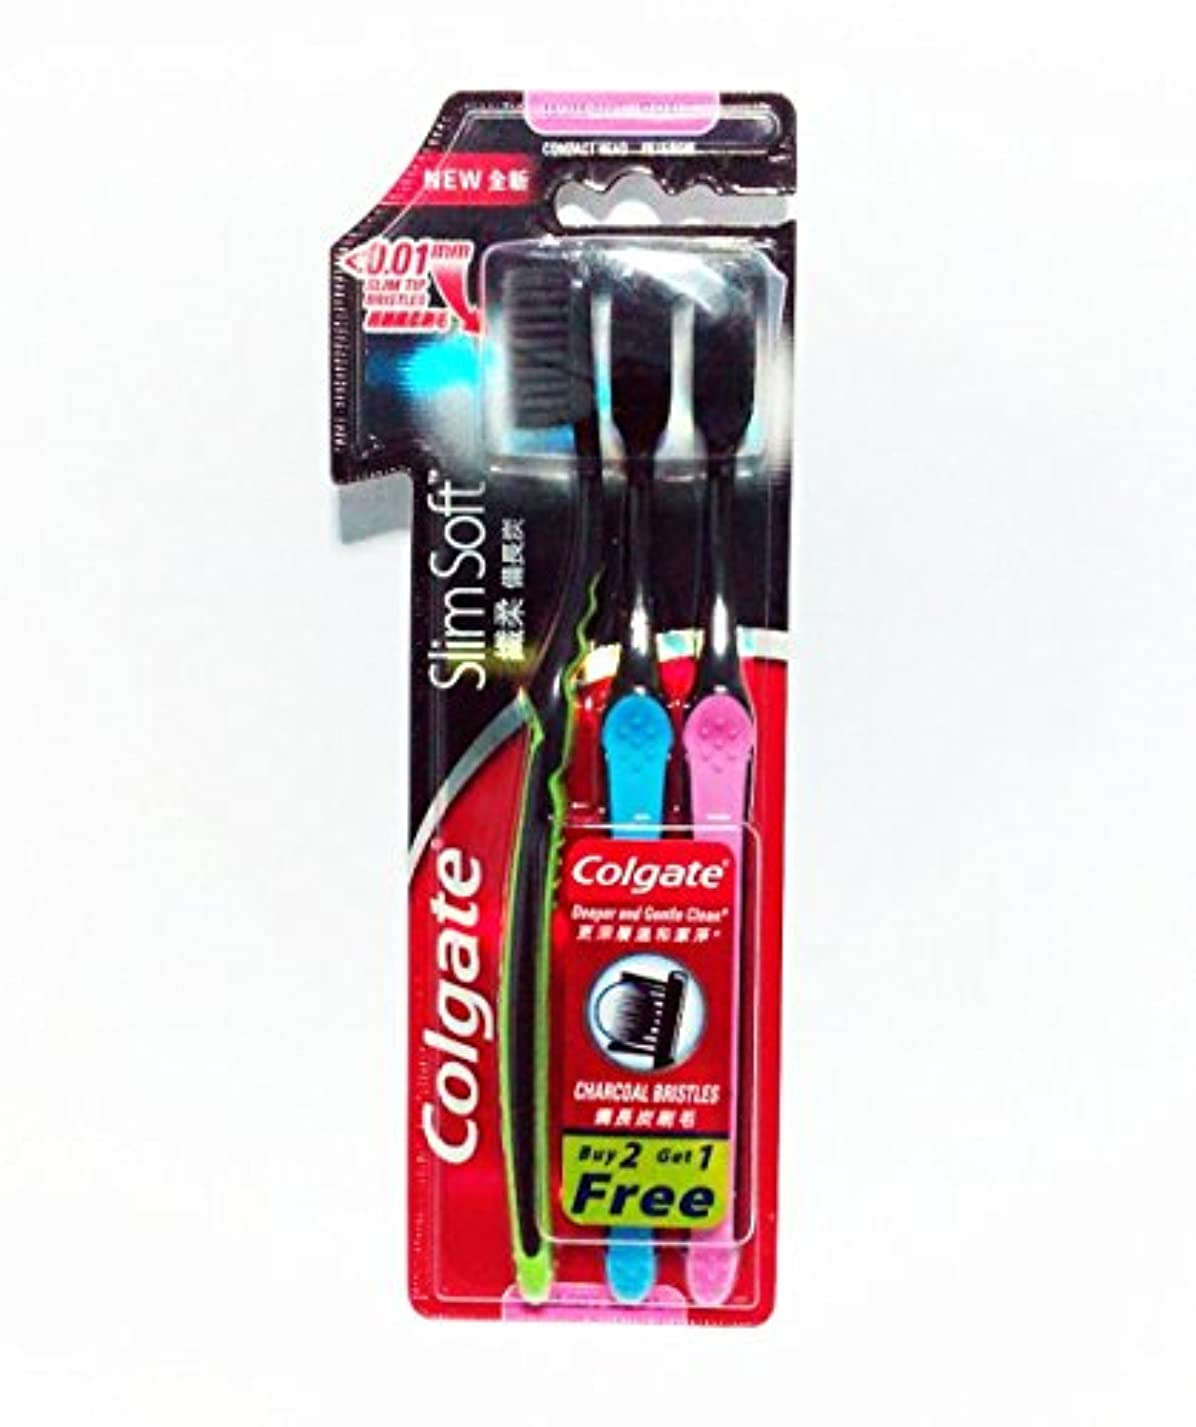 シプリー舞い上がる普通にColgate Slim Soft Charcoal Toothbrush (Pack of 3) 17x Slimmer Soft Tip Bristles (Ship From India)